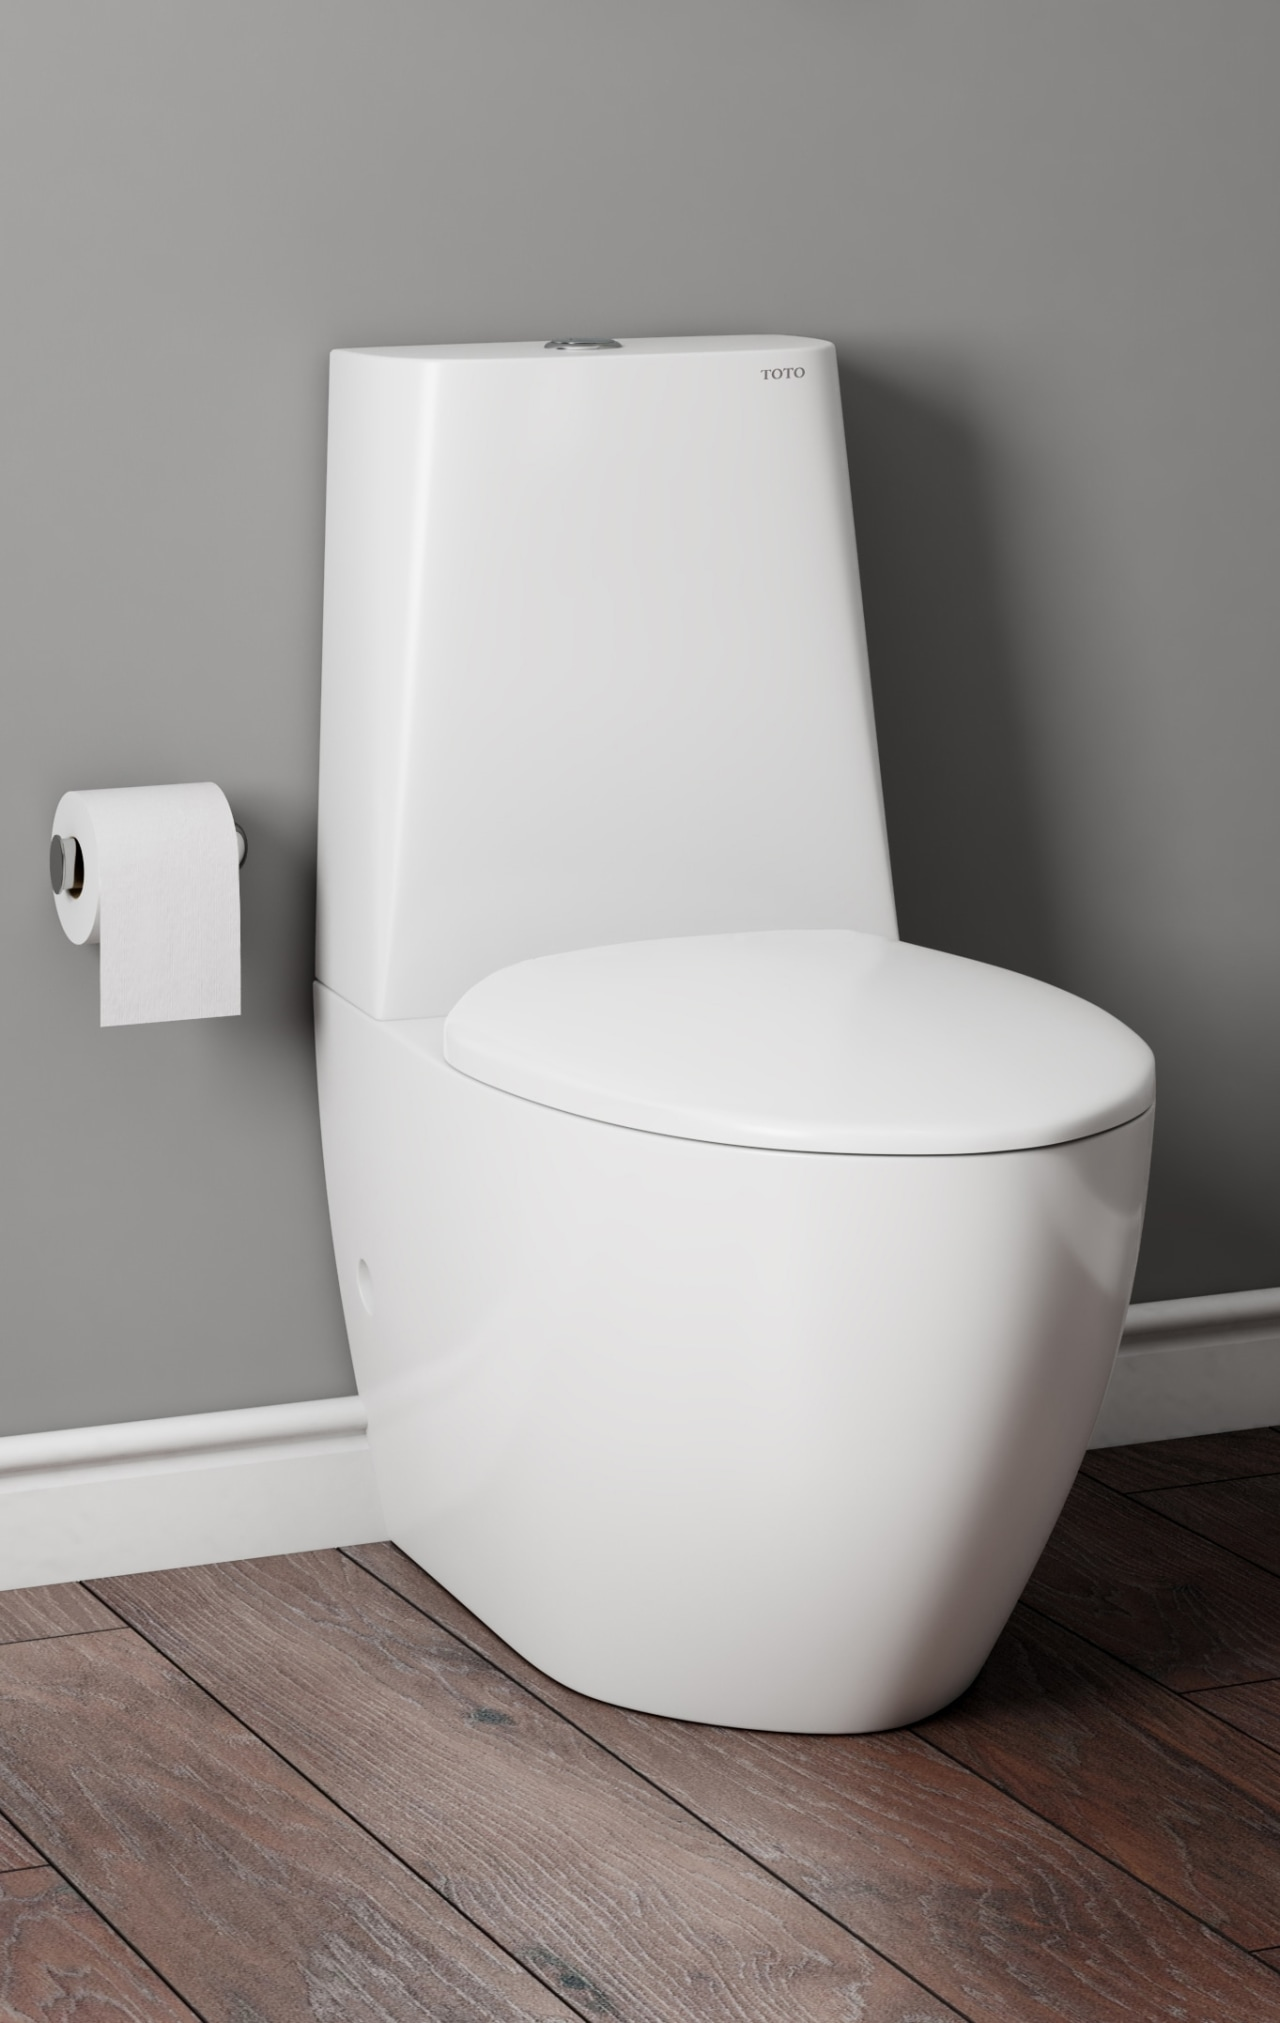 This toilet has a universal trap type (meaning angle, bathroom sink, bidet, ceramic, chair, plumbing fixture, product, tap, toilet, toilet seat, gray, white